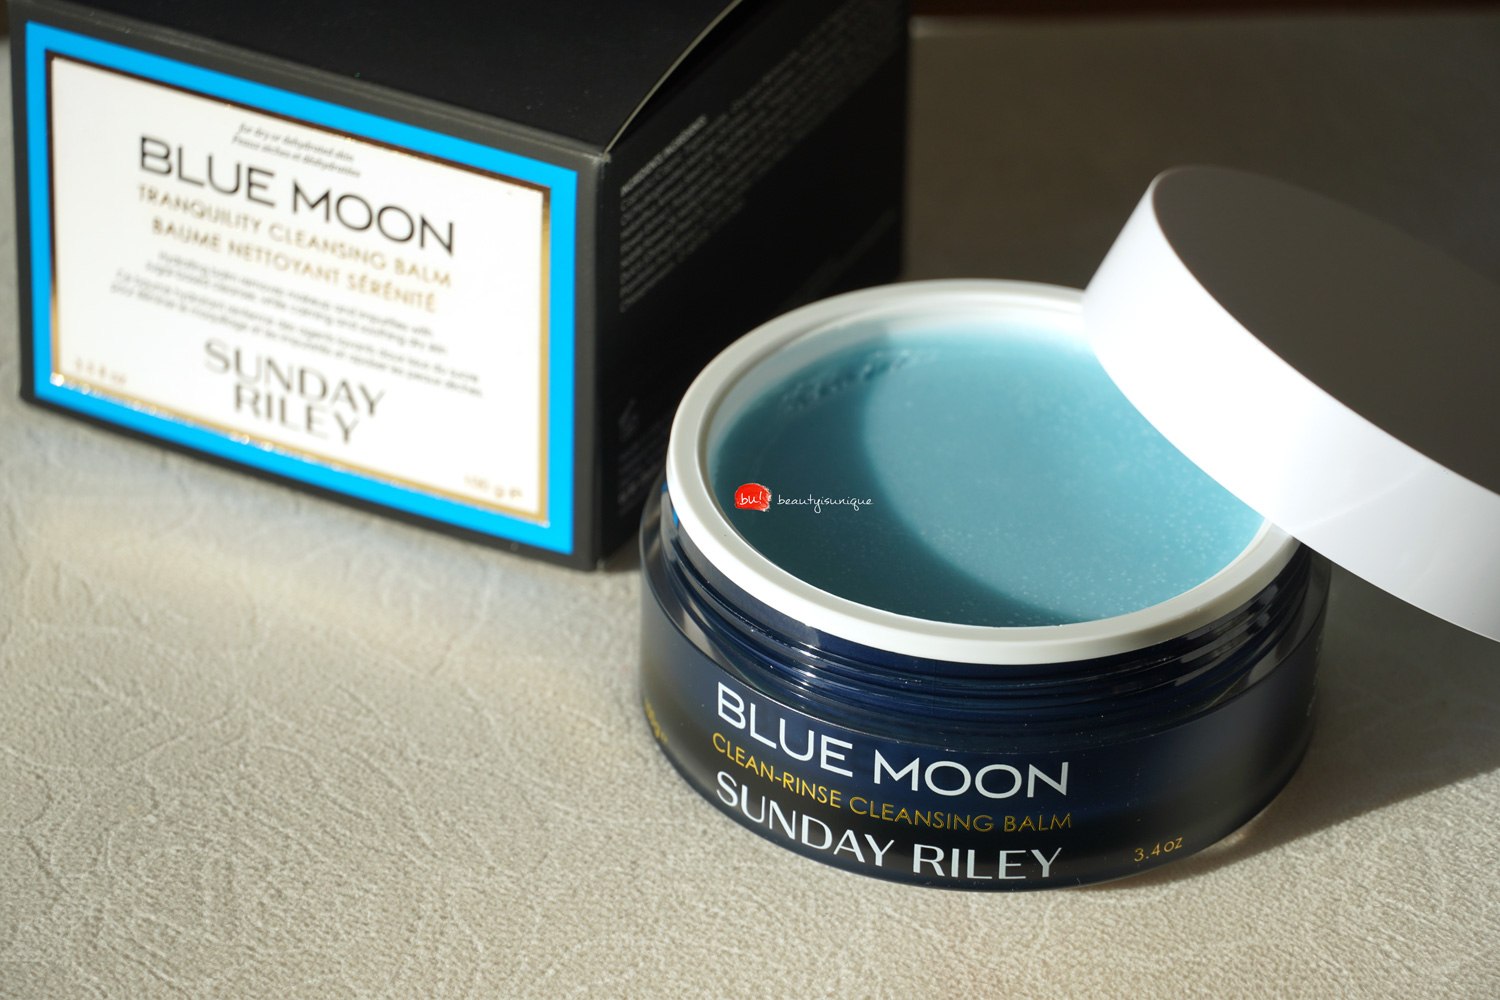 sunday-riley-blue-moon-clean-rinse-cleansing-balm